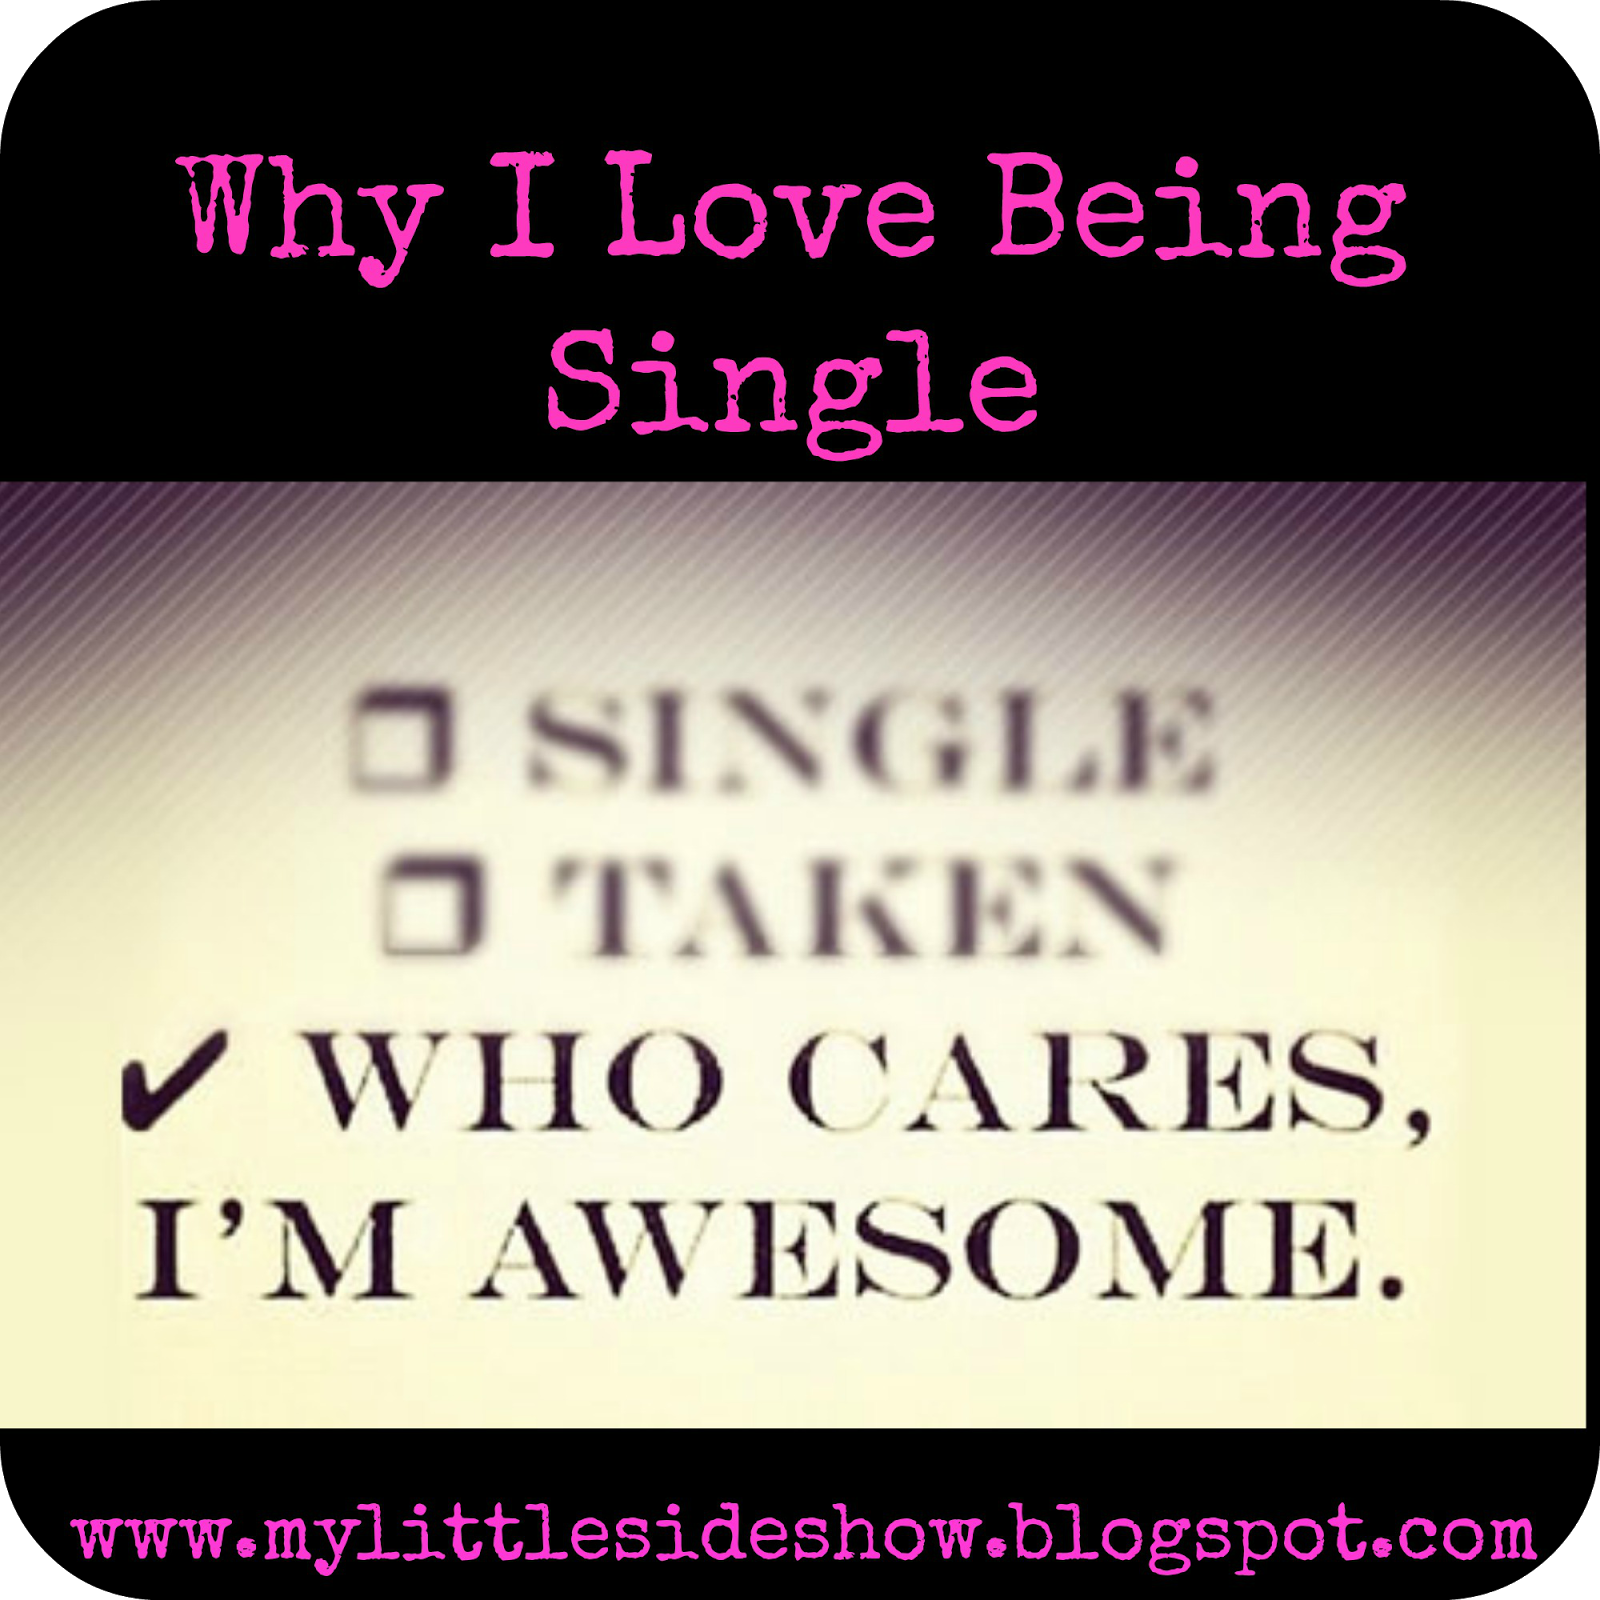 Quotes About Being In Love: Quotes About Being Single And Loving It. QuotesGram